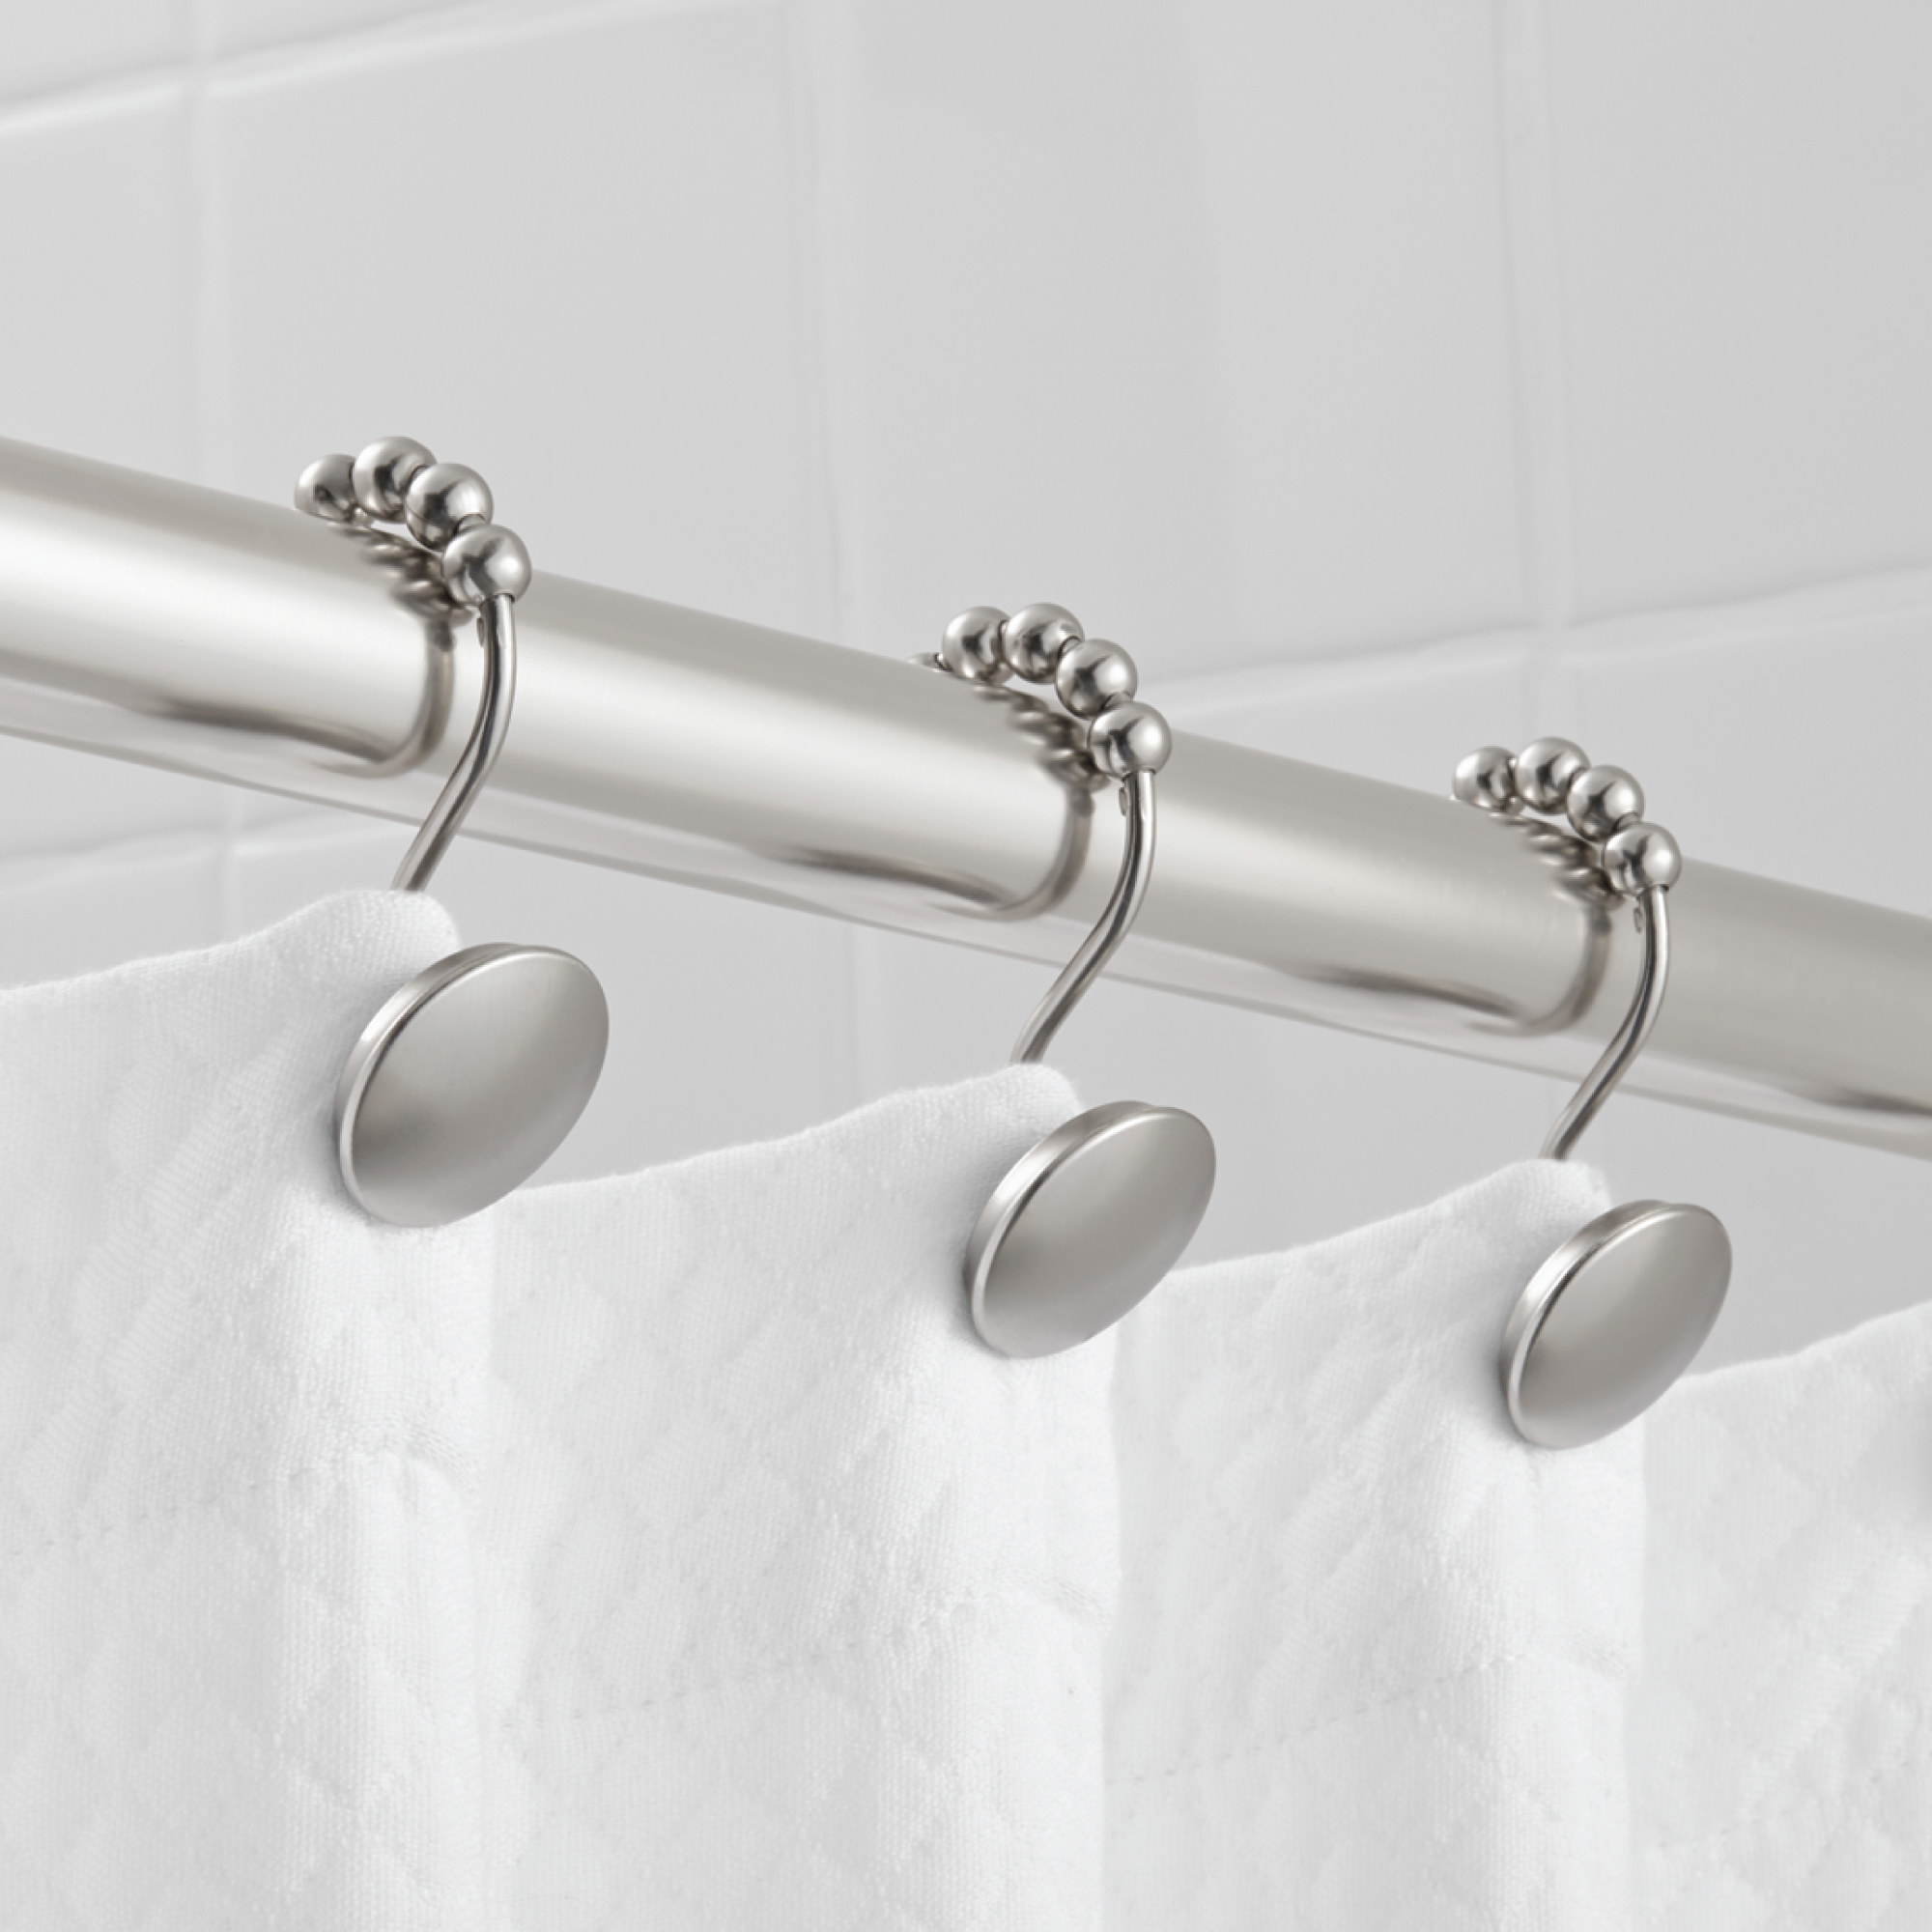 The non-rust shower curtain hooks